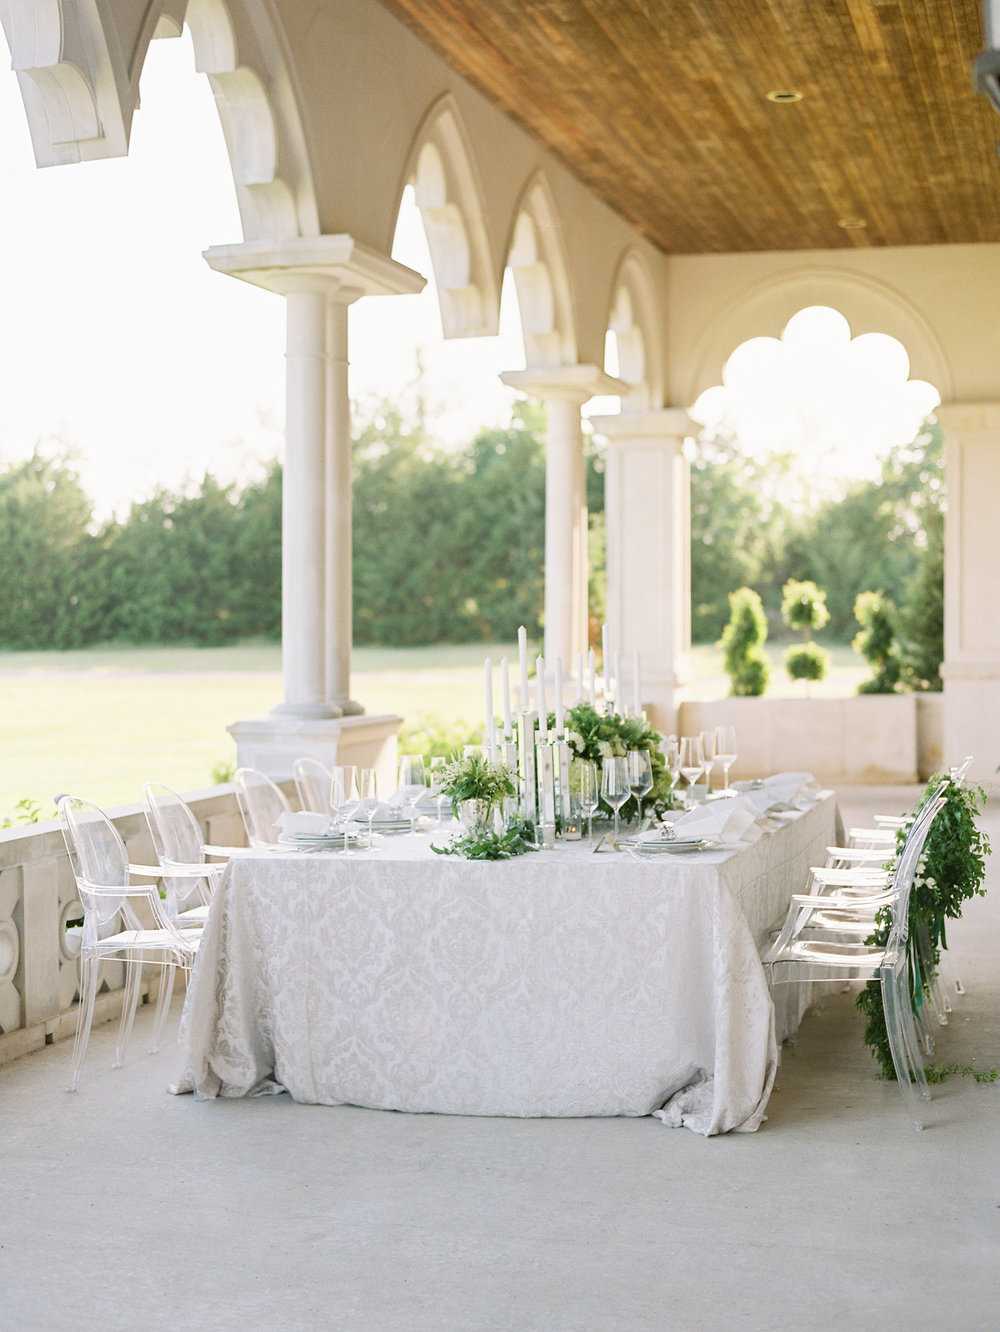 Green and white castle wedding inspiration by Columbus, Ohio wedding planner Meggie Francisco. Photo by Heather Moore.